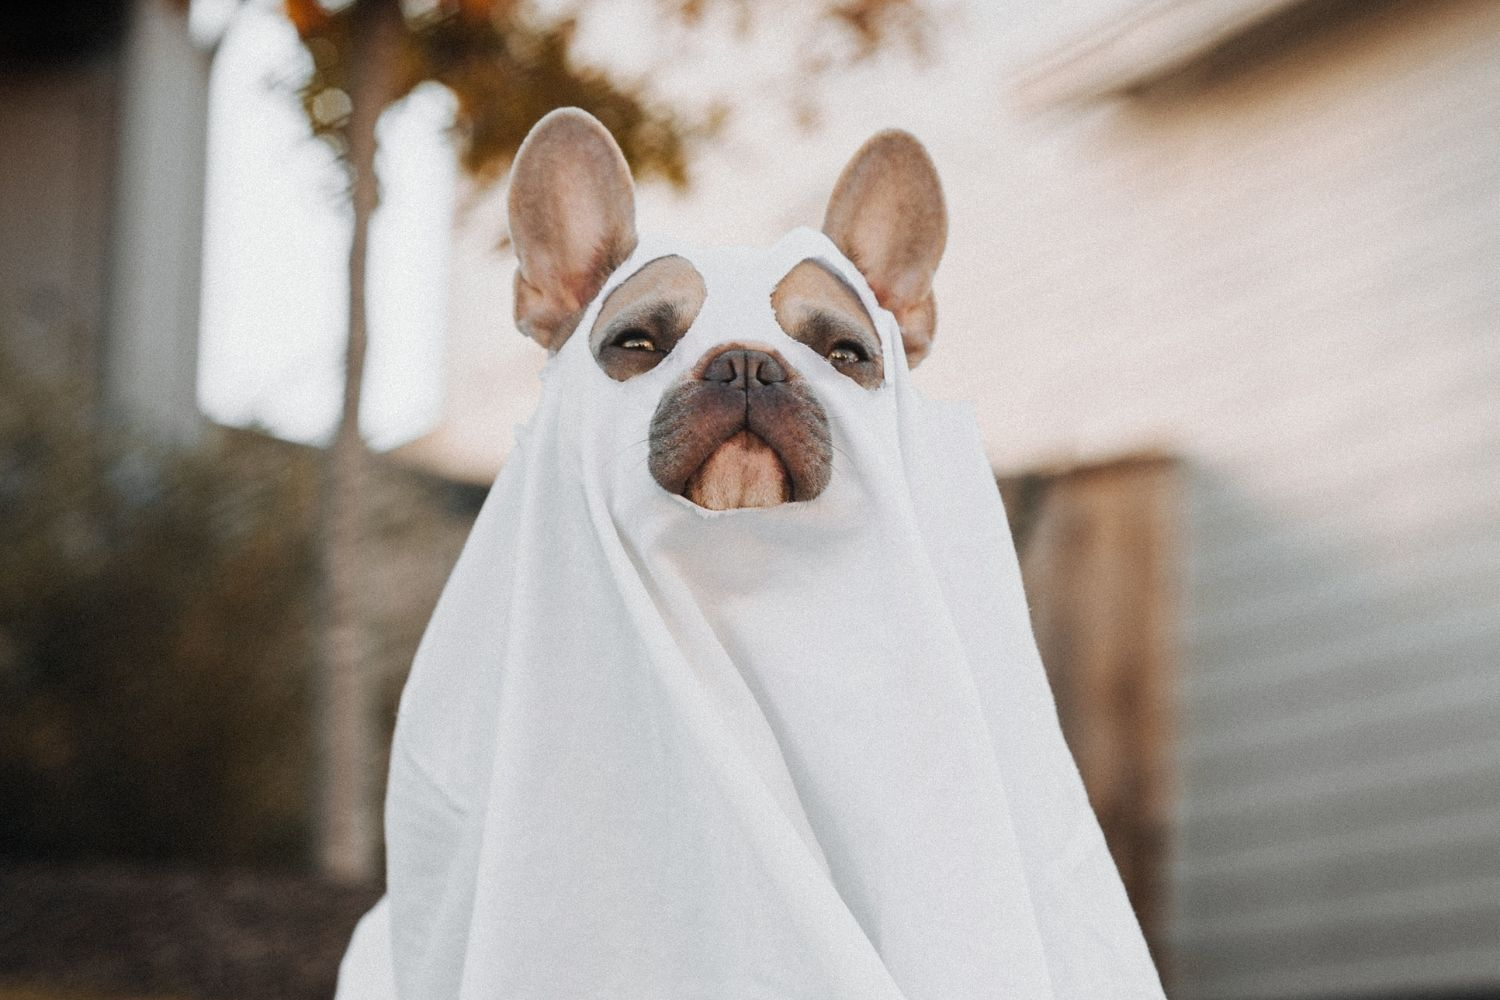 7 Dog Halloween Costume Ideas Perfect for 2019